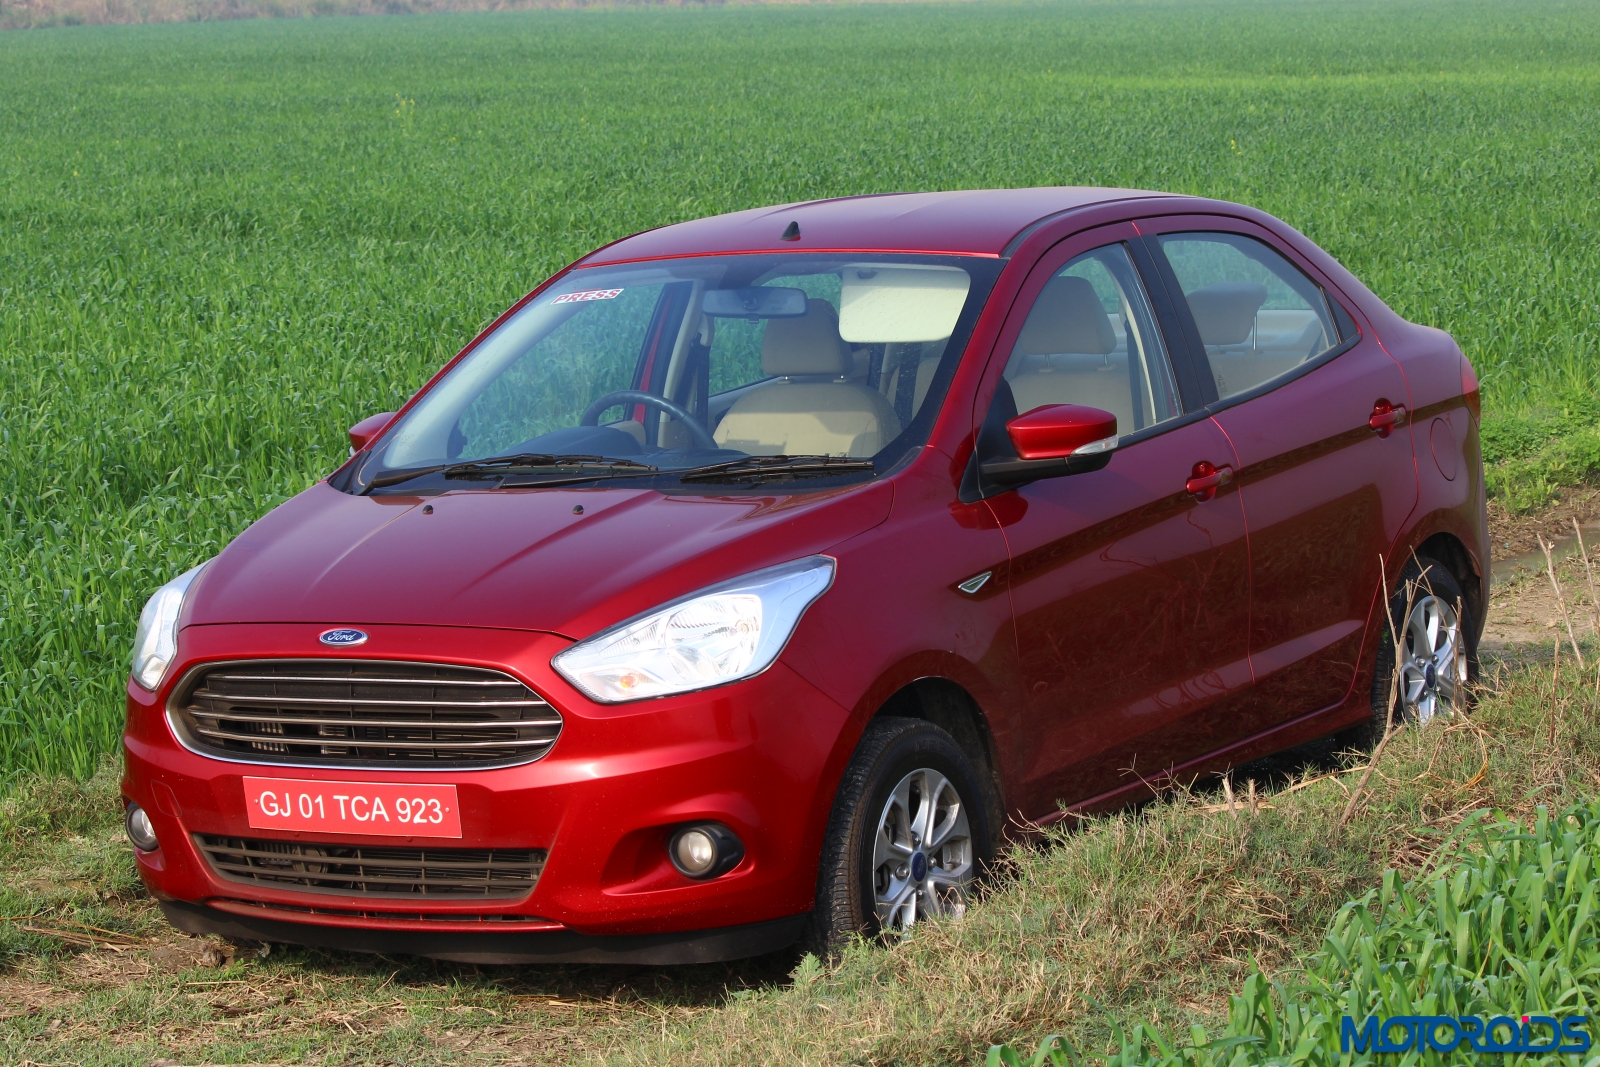 Ford Figo and Figo Aspire now equipped with ABS and EBD on